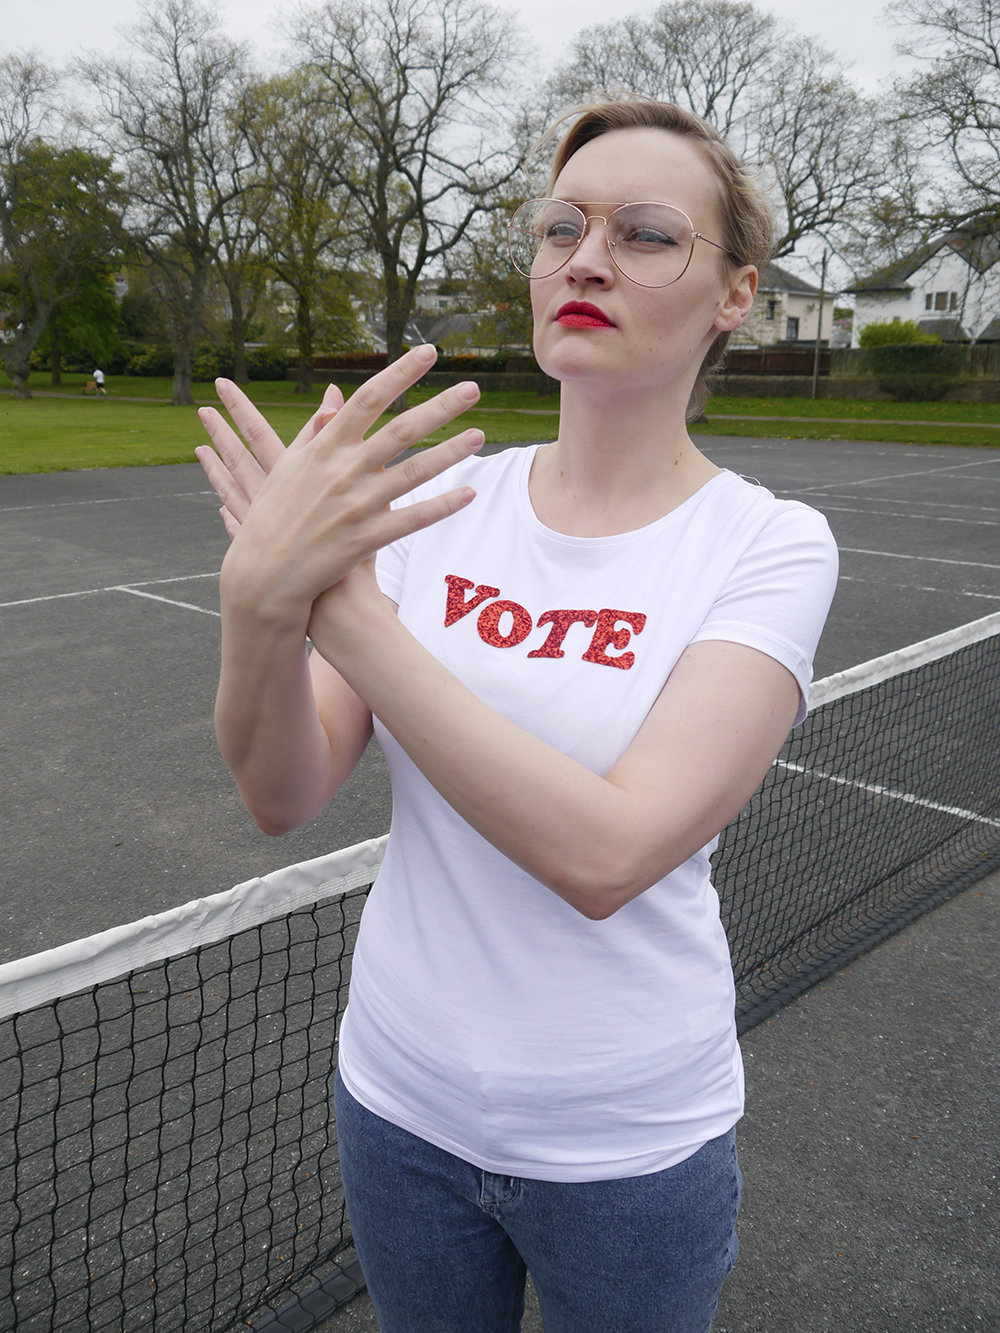 vote for Pedro, Napolean Dynamite dance routine, Unlikely Style Icon, politcal statement tee trend, quirky style blog